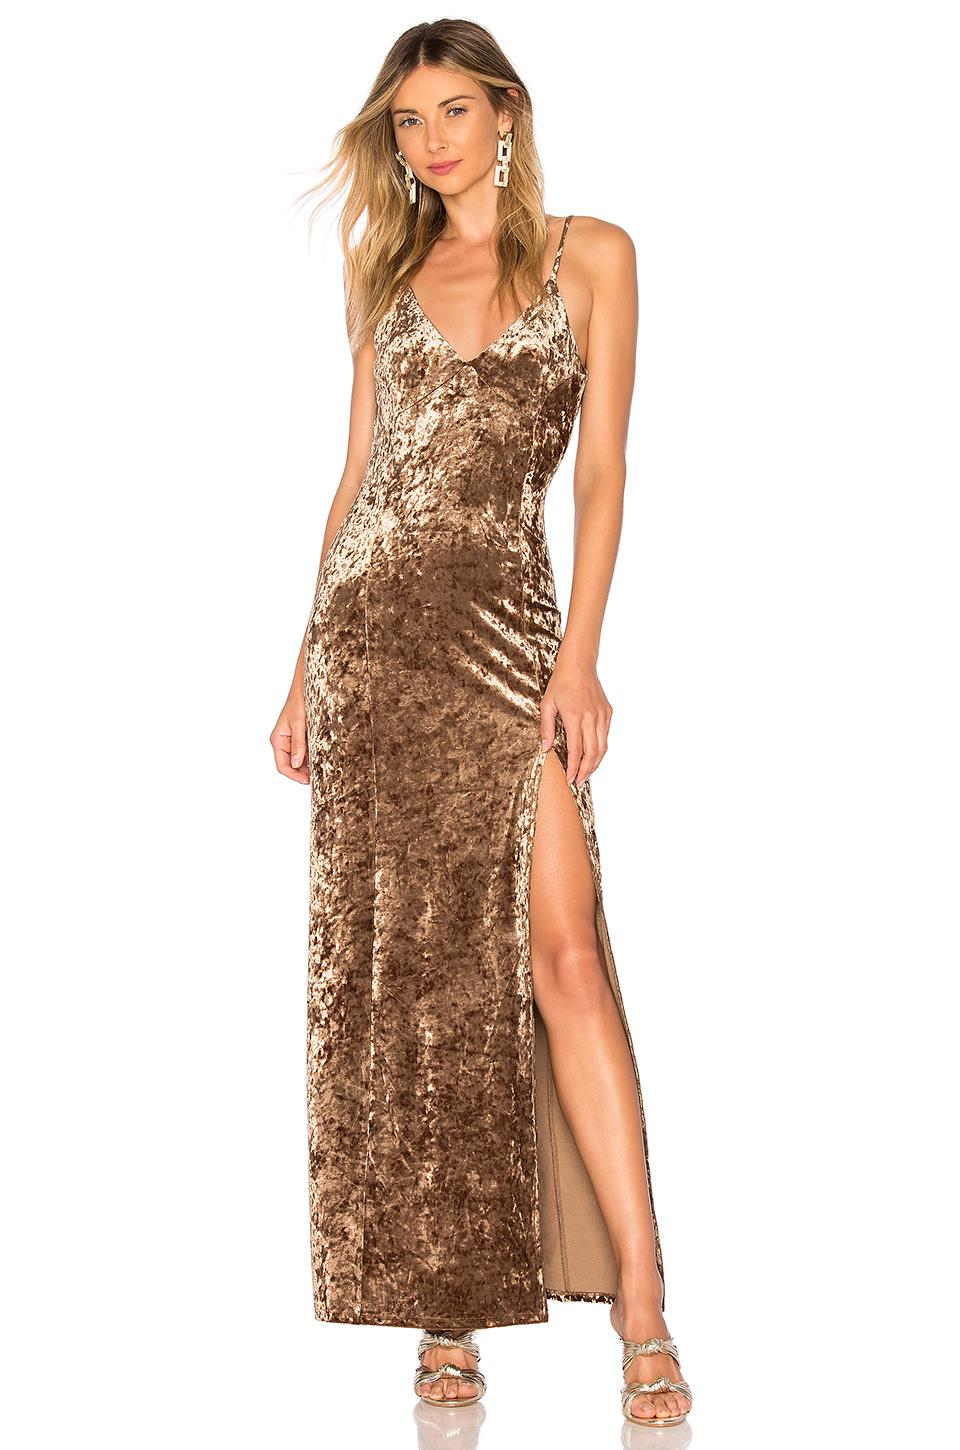 House Of Harlow 1960 X Revolve Shari Dress In Toffee